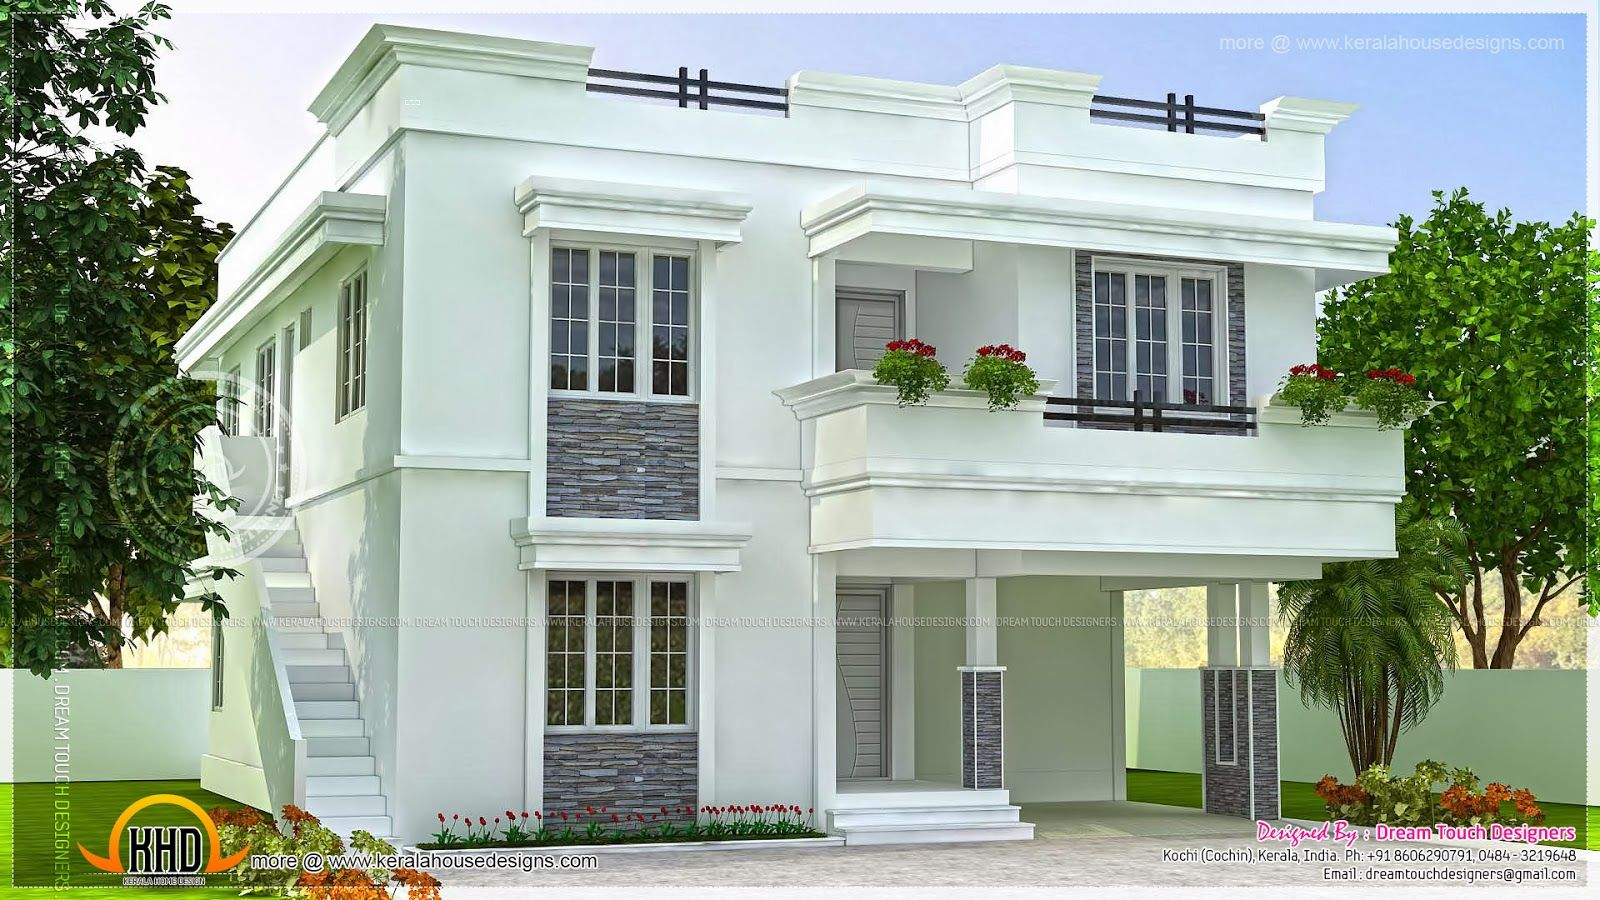 Modern beautiful home modern beautiful home design indian Indian small house exterior design